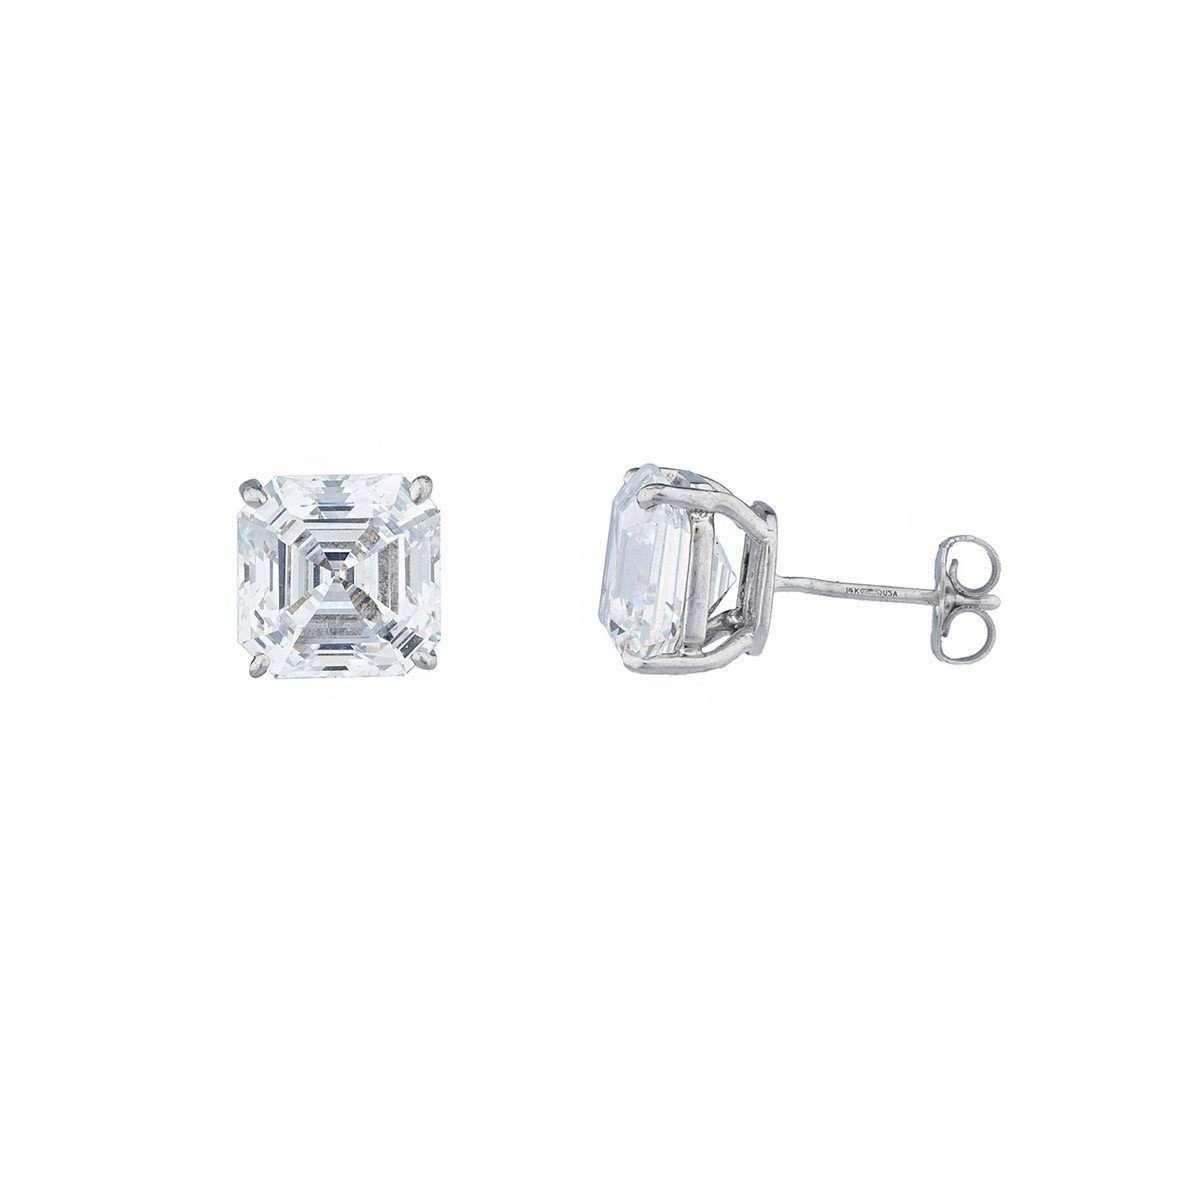 Fantasia 14kt White Gold 1.5ct Asscher Stud Earrings UMby8